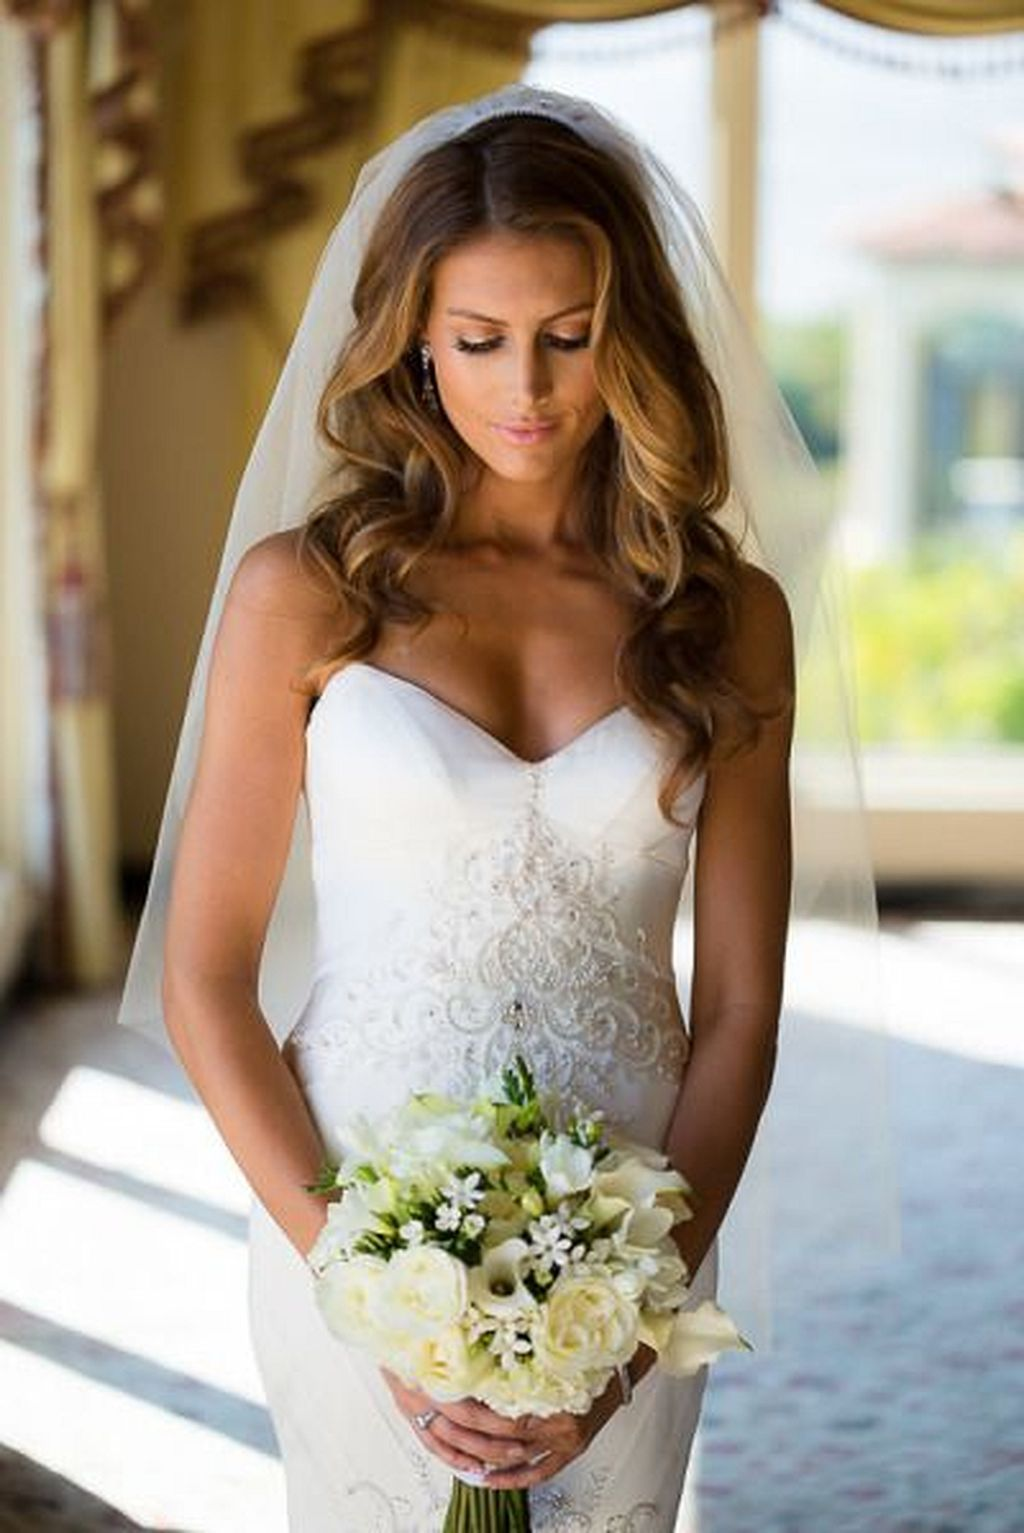 tips for looking your best on your wedding day | wedding